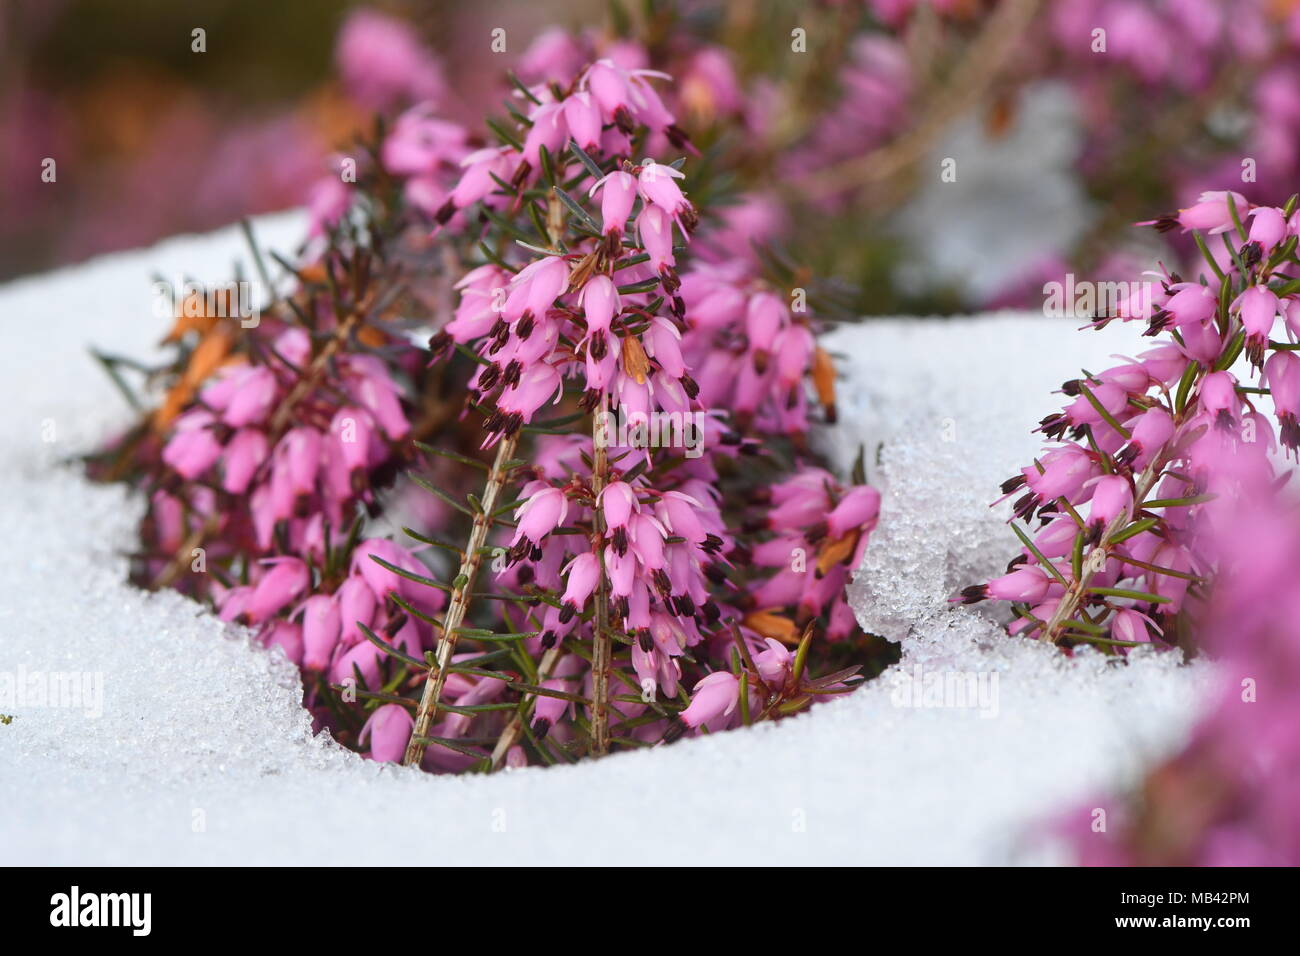 Red heather (Erica sp.) flowering in the snow. A close-up of pink flowers of a common heather plant in the family Ericaceae - Stock Image